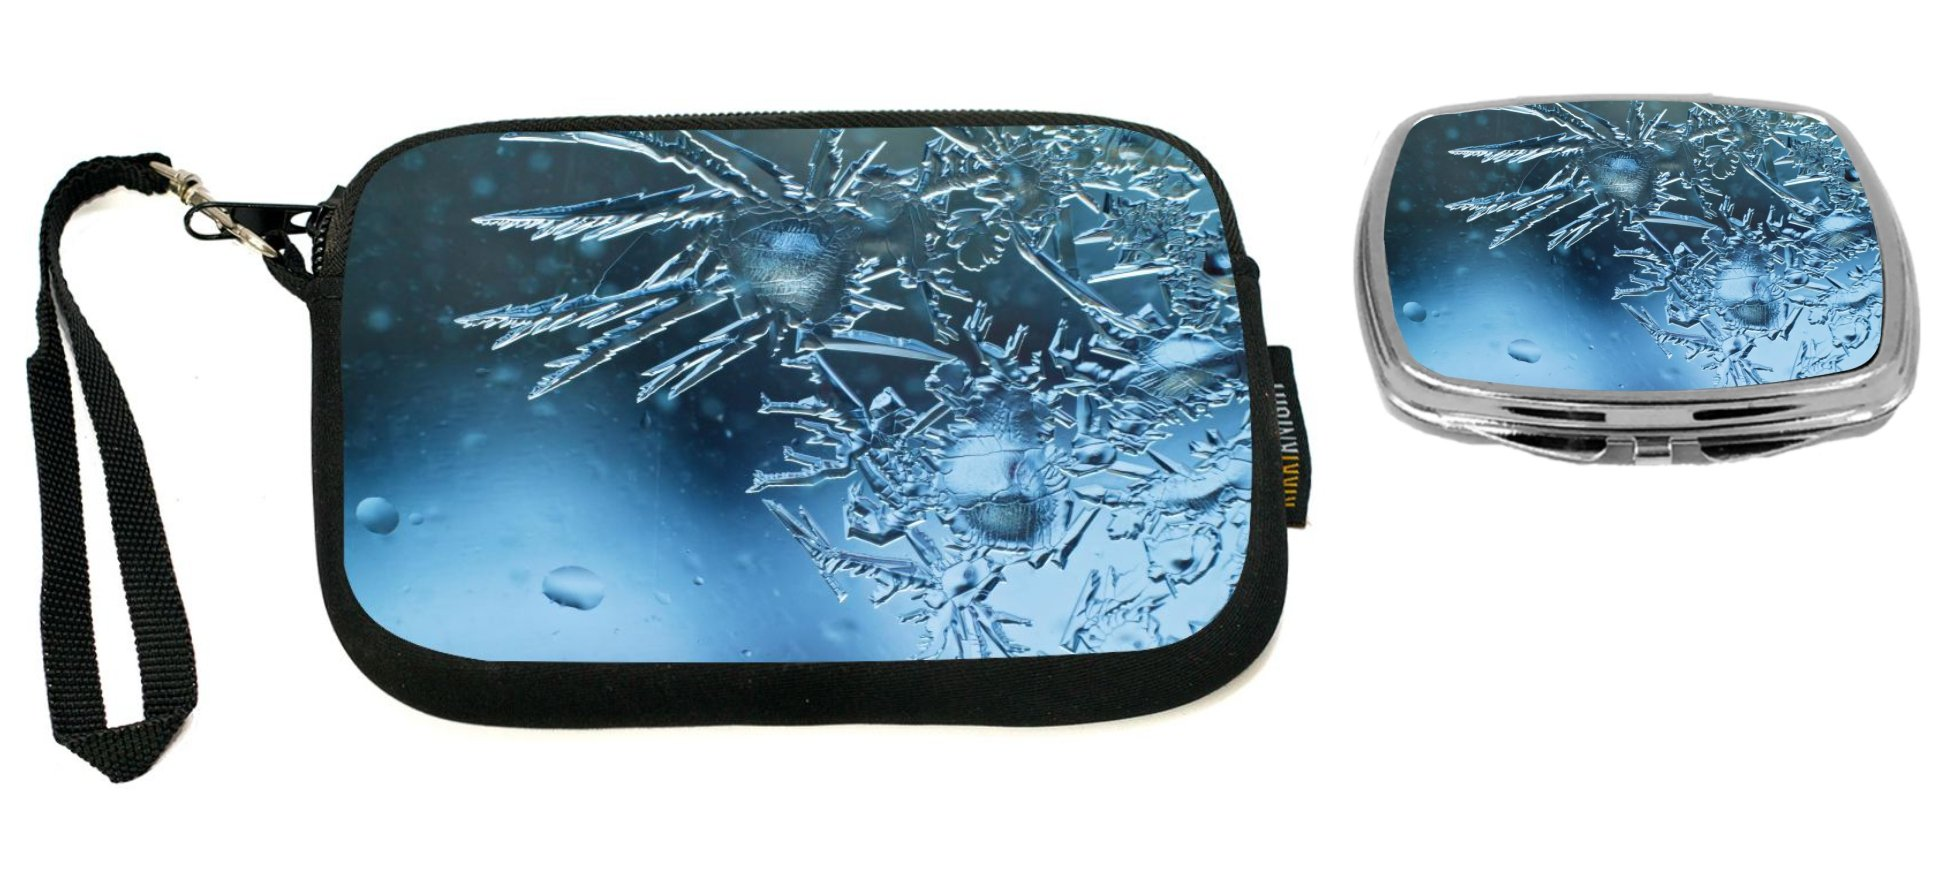 Rikki Knight Ice Crystals on Glass Window Design Neoprene Clutch Wristlet with Matching Square Compact Mirror